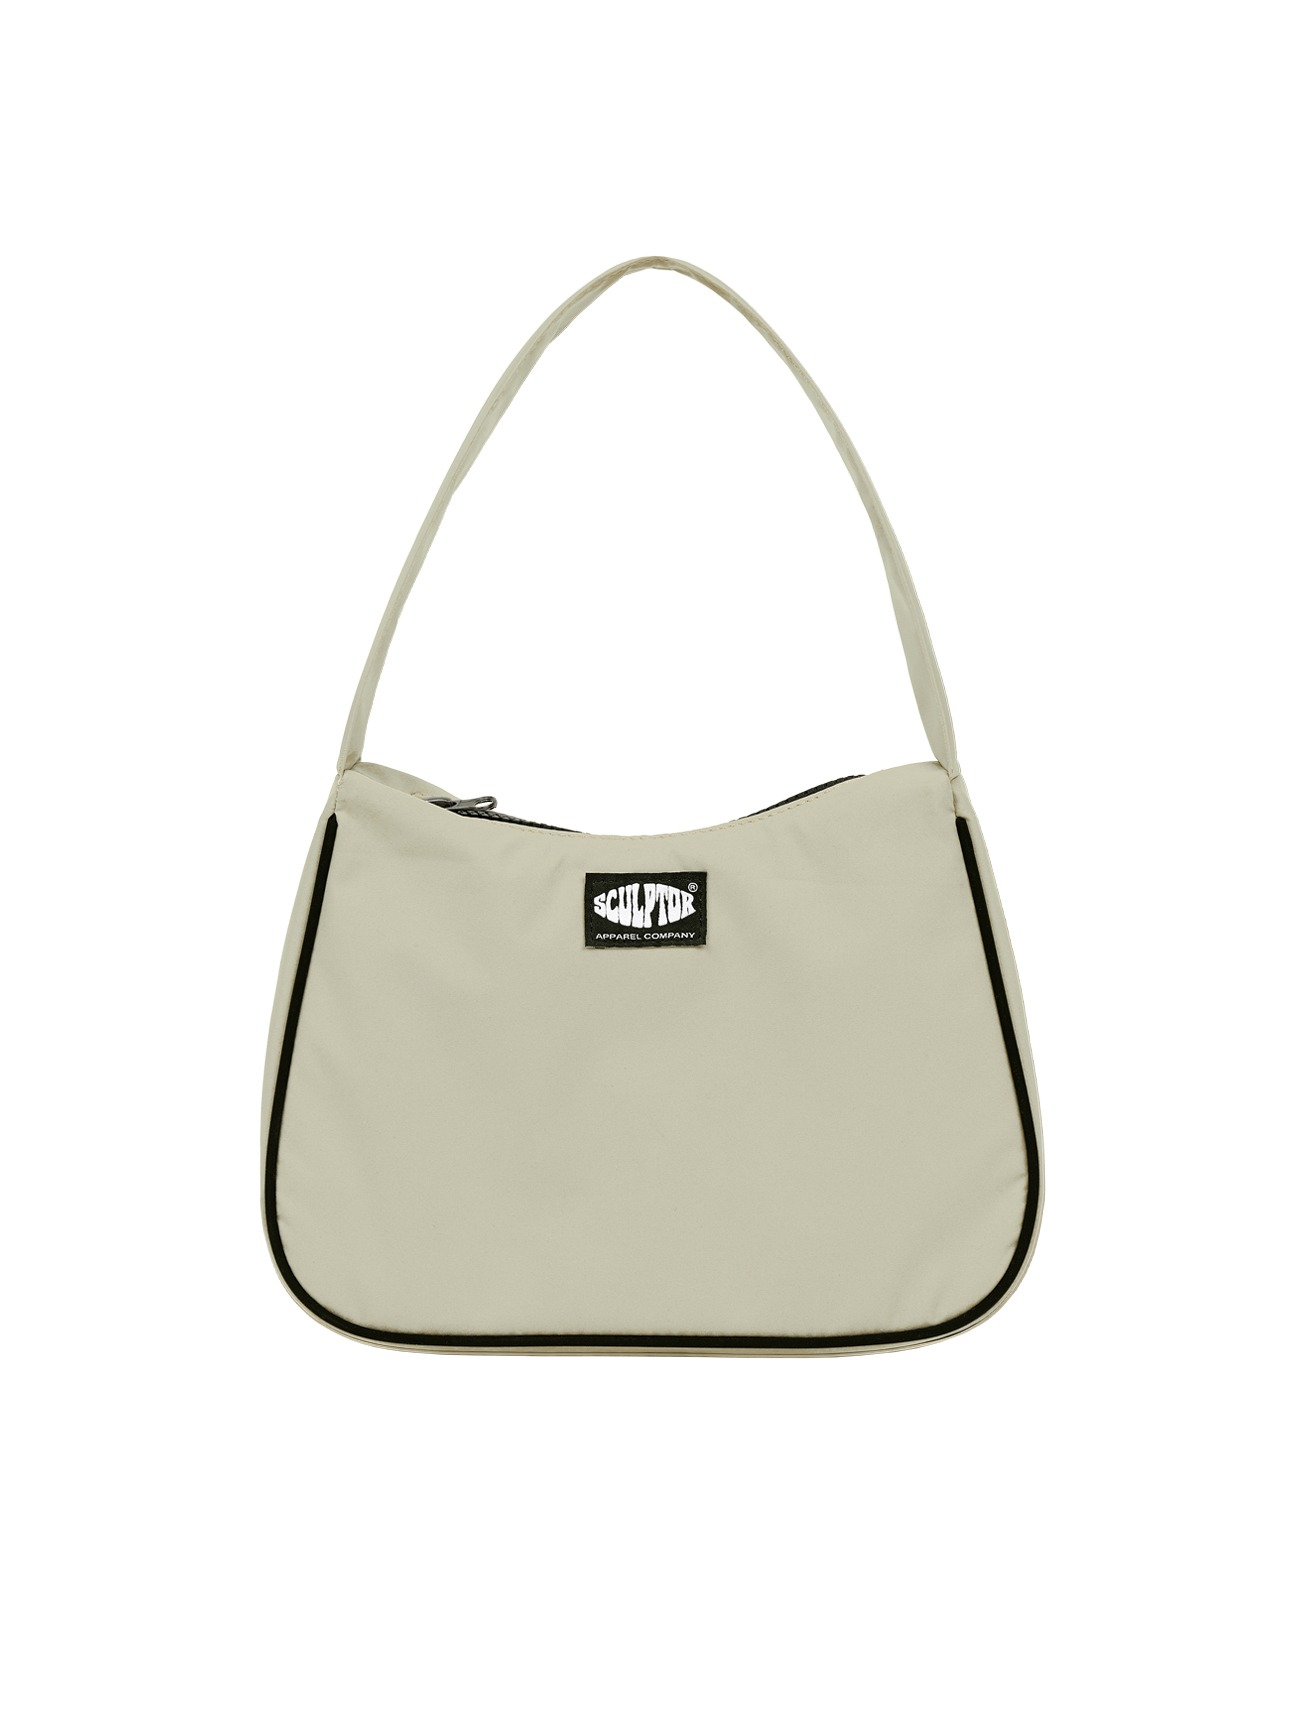 Satin Tote Bag Beige